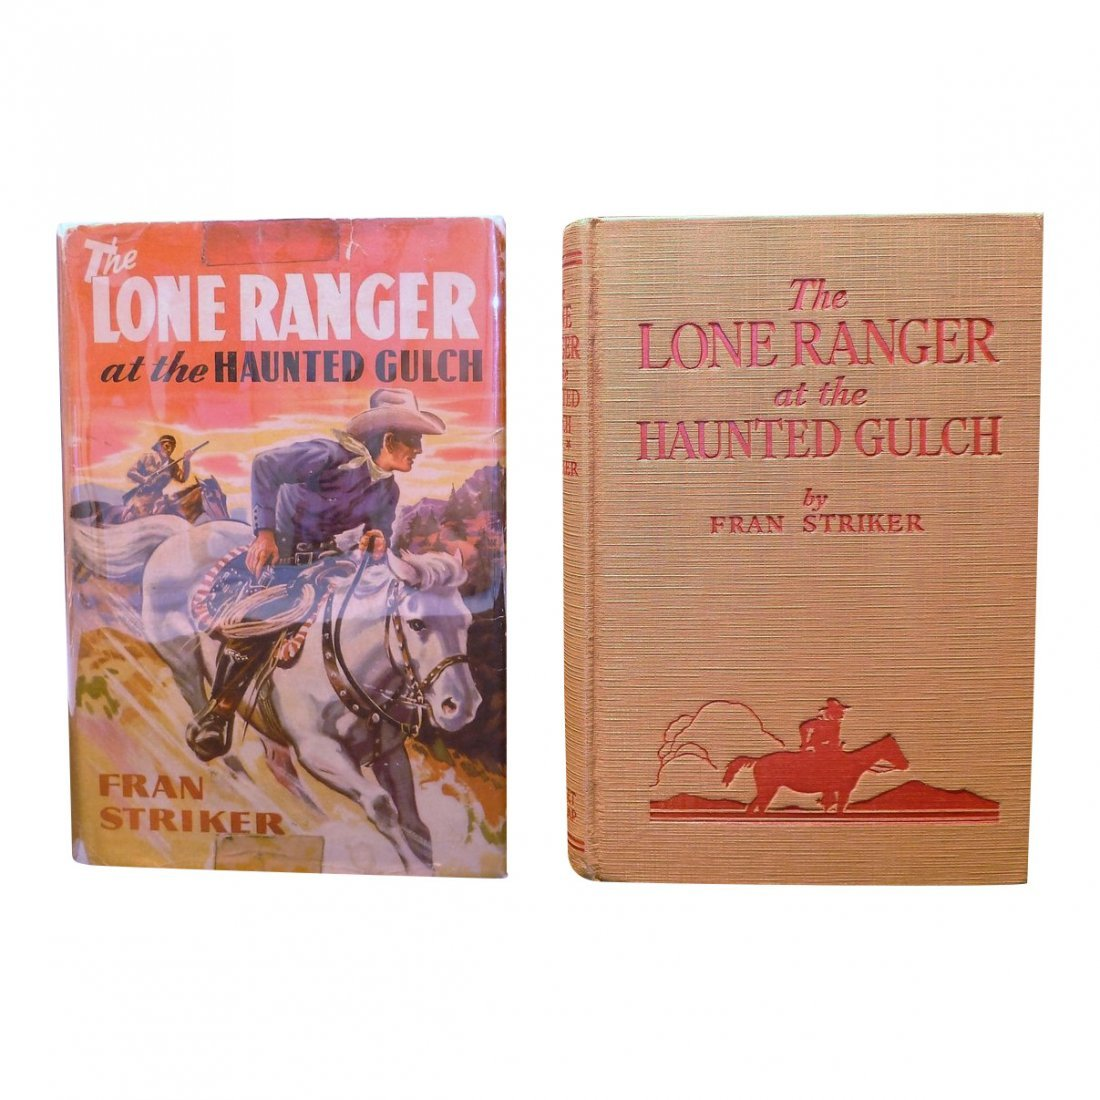 The Lone Ranger at the Haunted Gultch - Signed